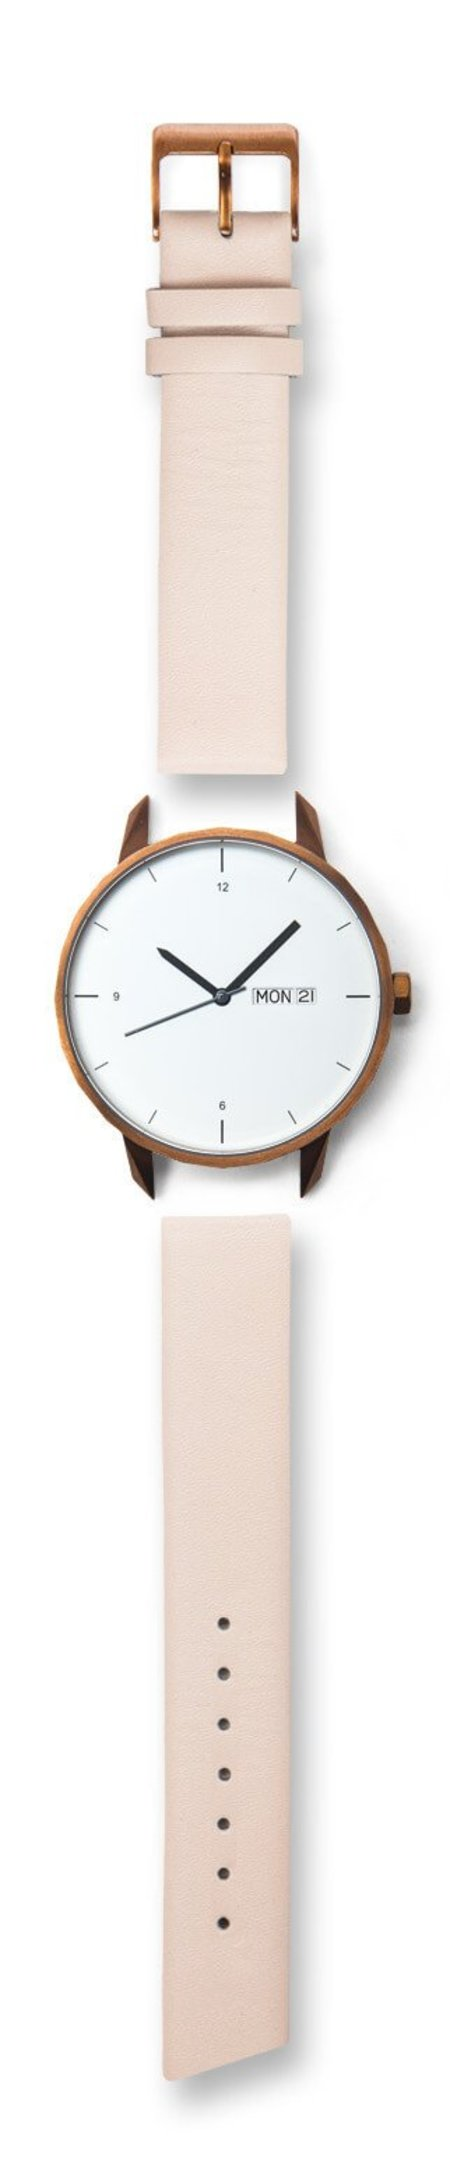 Tinker Watches 42mm Copper Watch Nude Strap